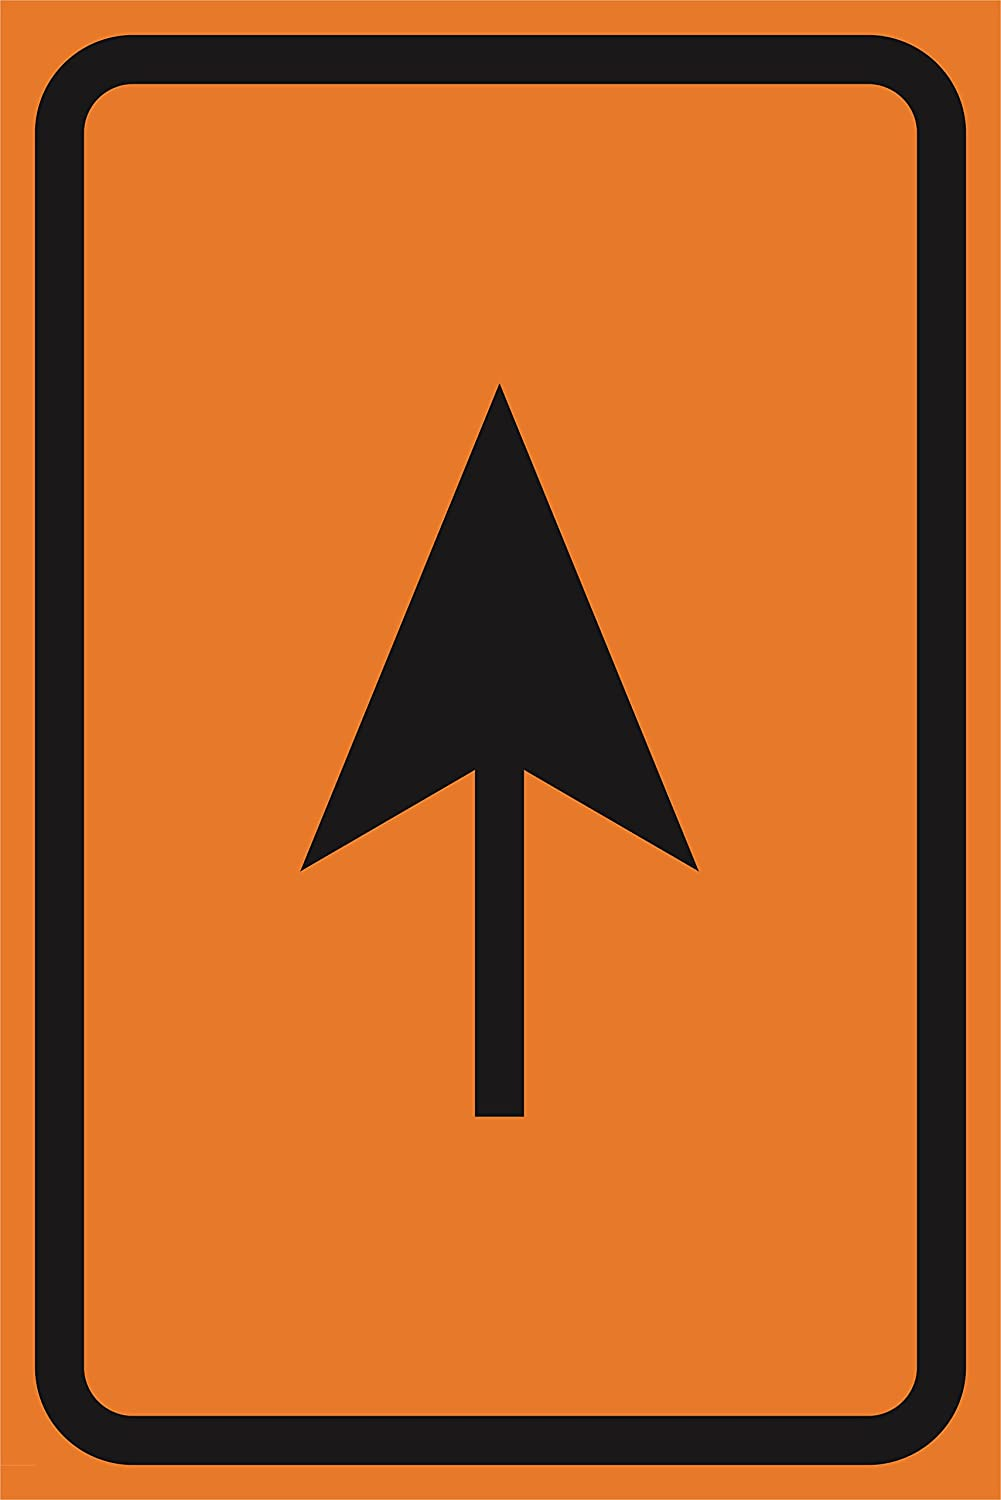 4 Pack - Up Ahead Arrow Orange Construction Zone Safety Street Road Warning Business Signs Commercial Plastic Sign Metal Aluminum